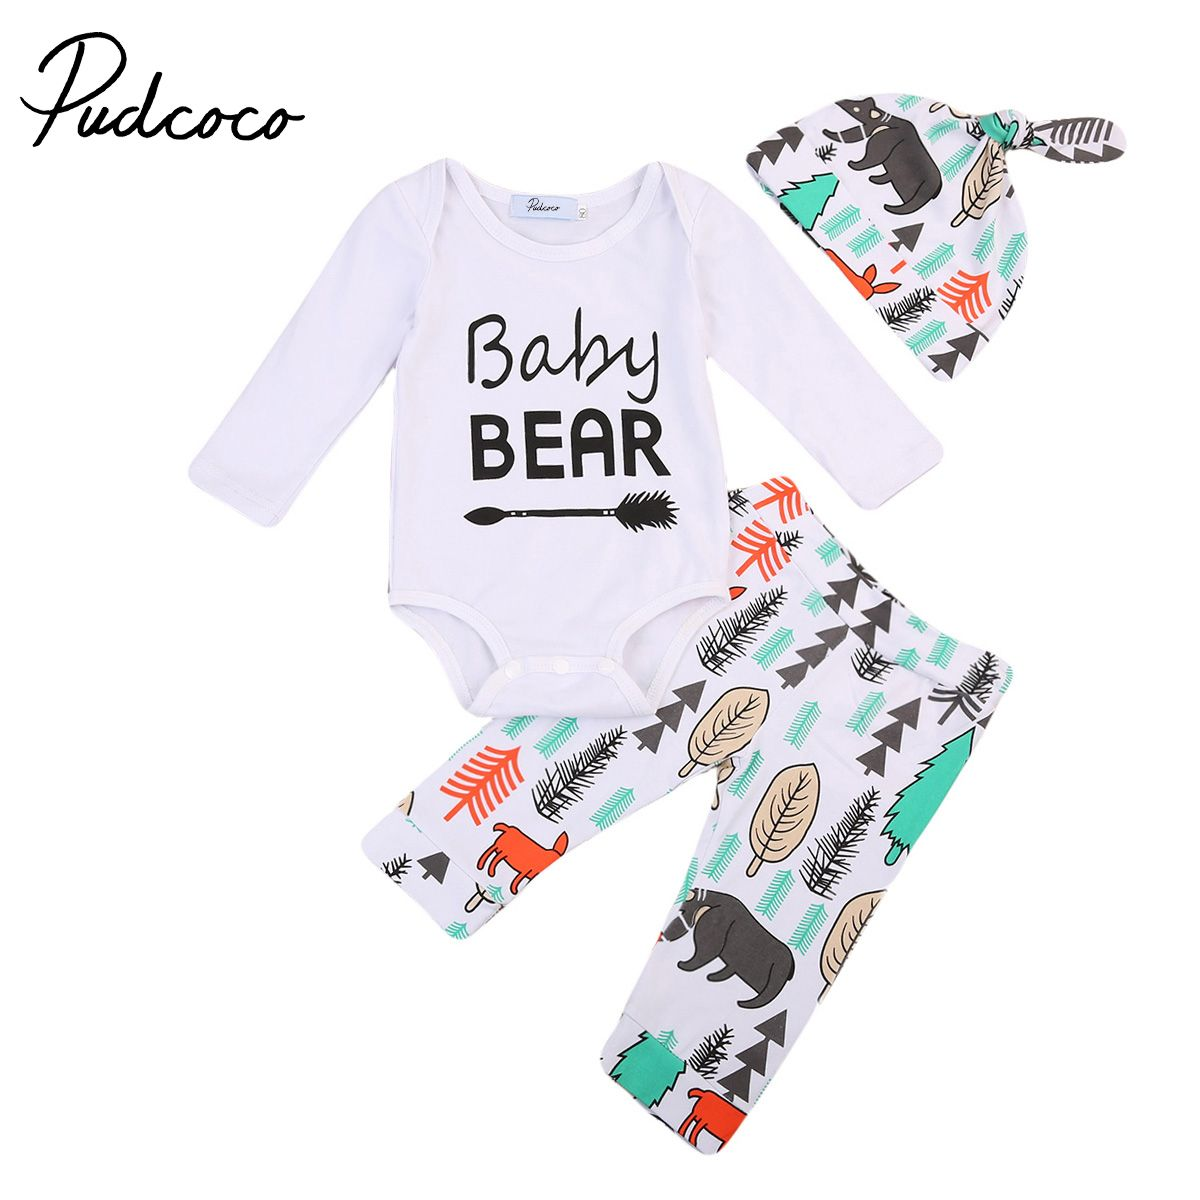 Casual Toddler Baby Boys 3pcs Outfit Set Winter Long Sleeves Cross T-Shirt Top Hat Cap Clothes Pant